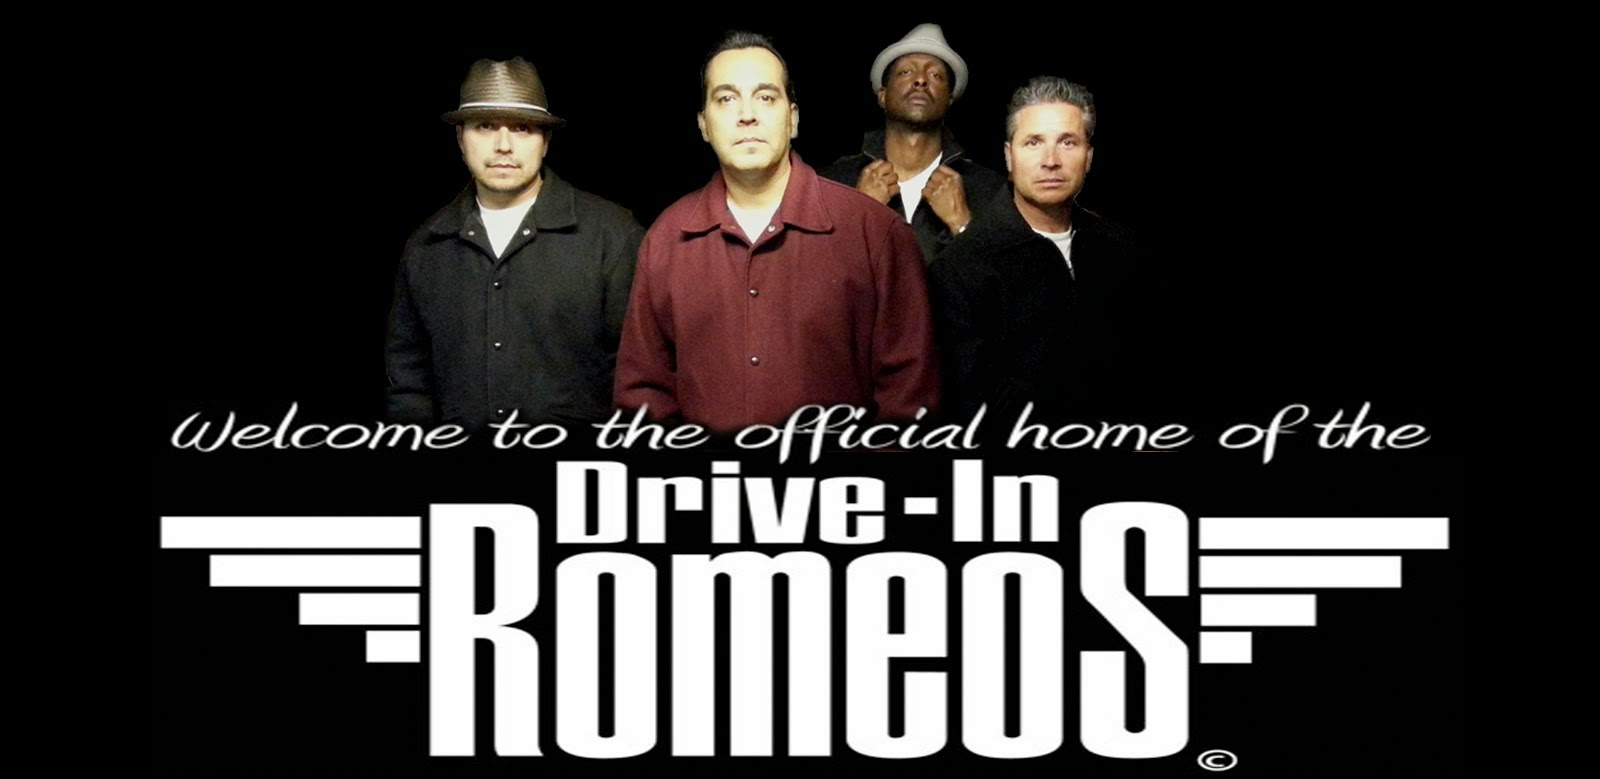 Drive-In Romeos